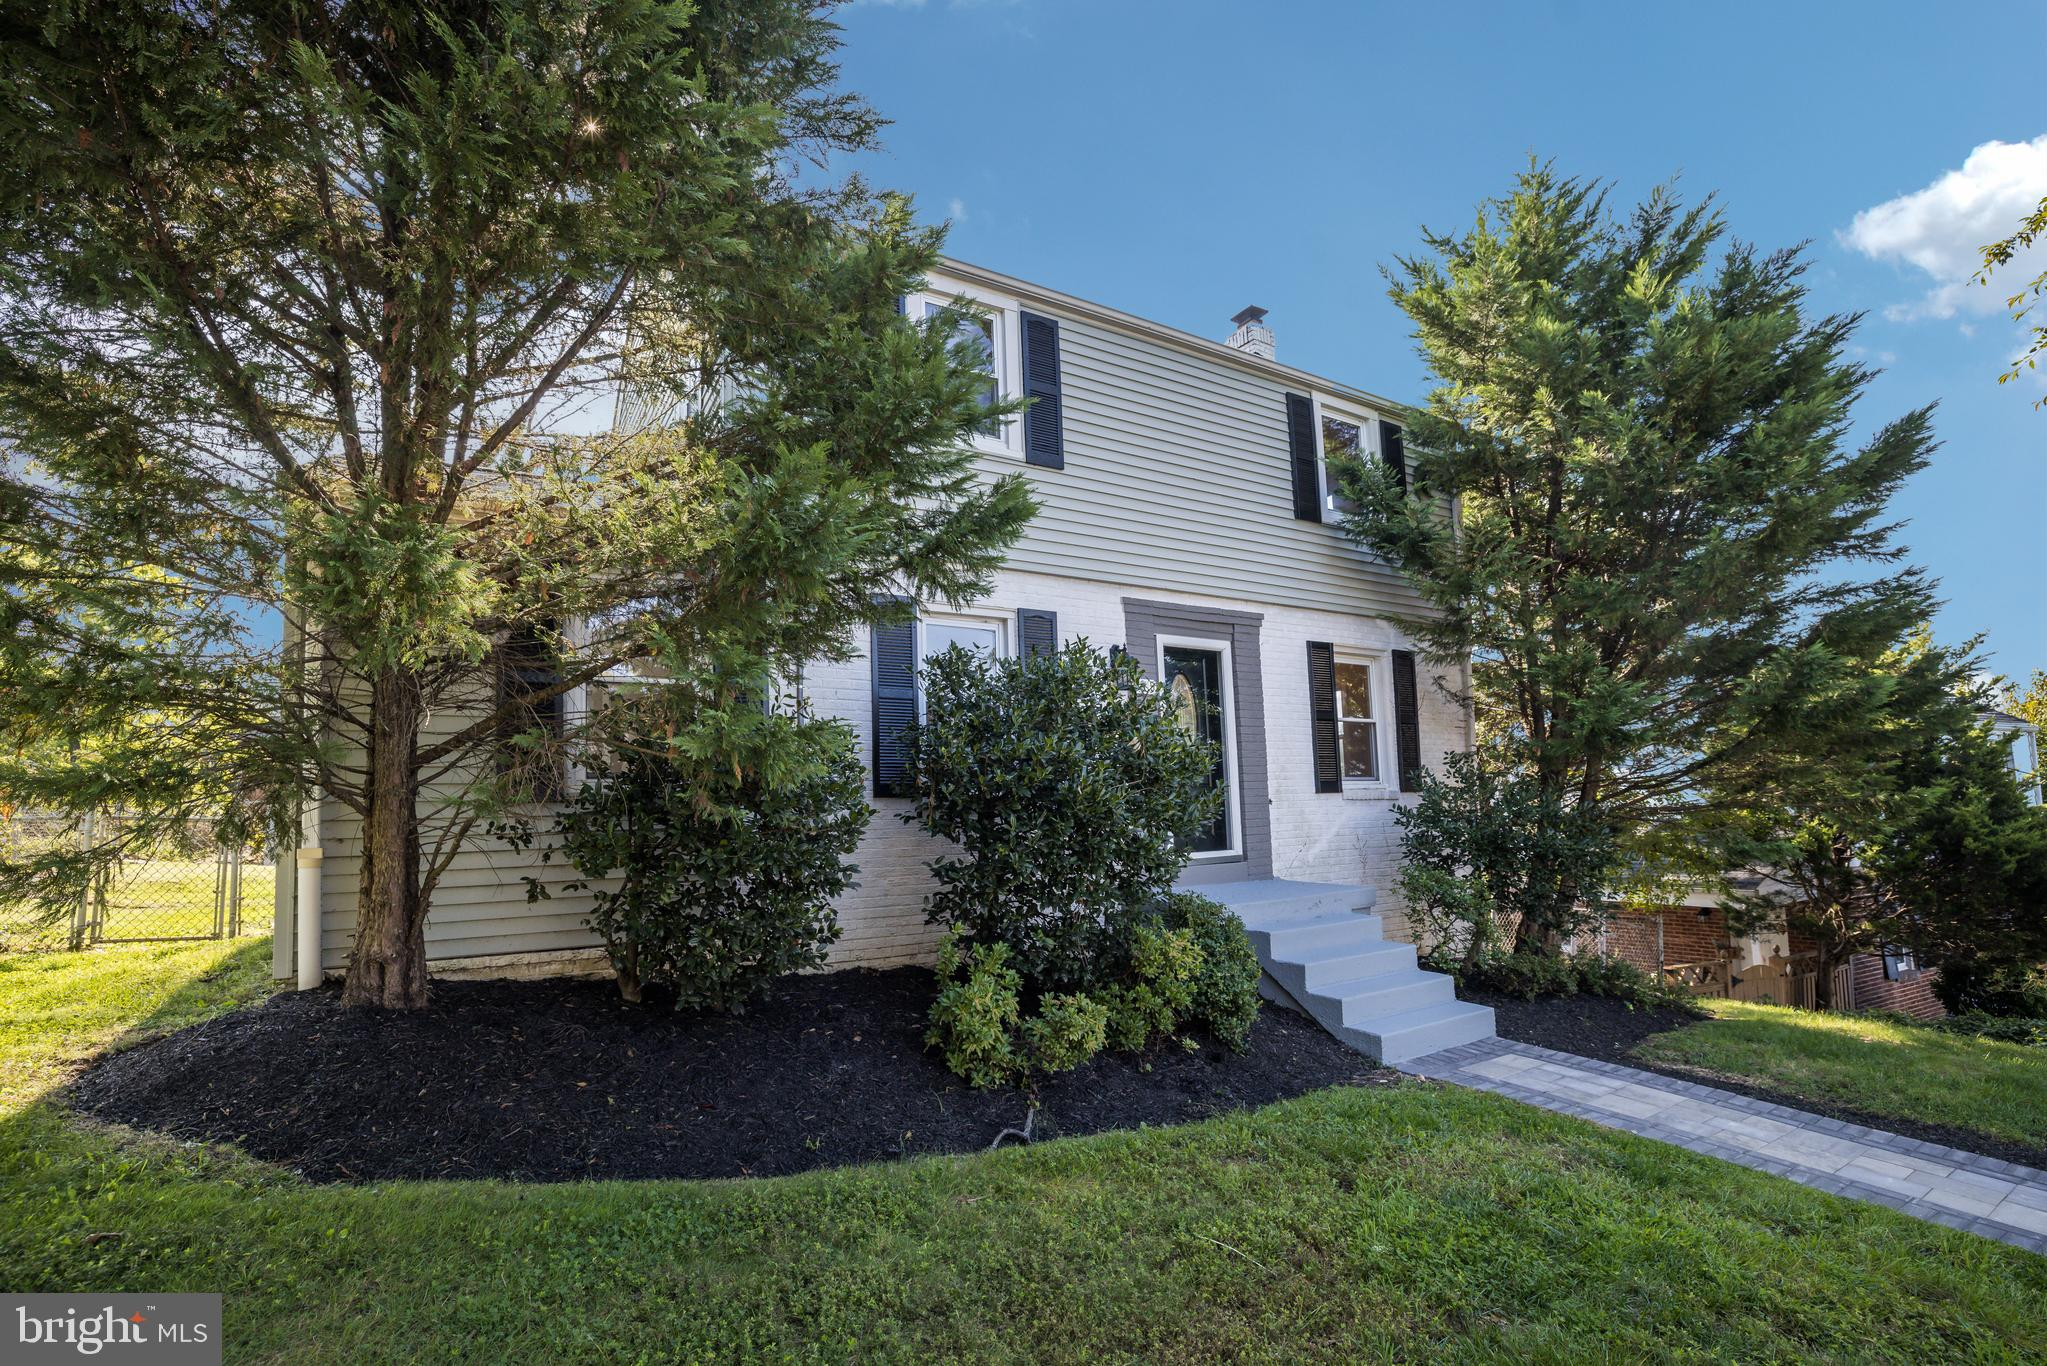 Welcome to Cheverly - small town charm with big city access - and this charming mid-century colonial